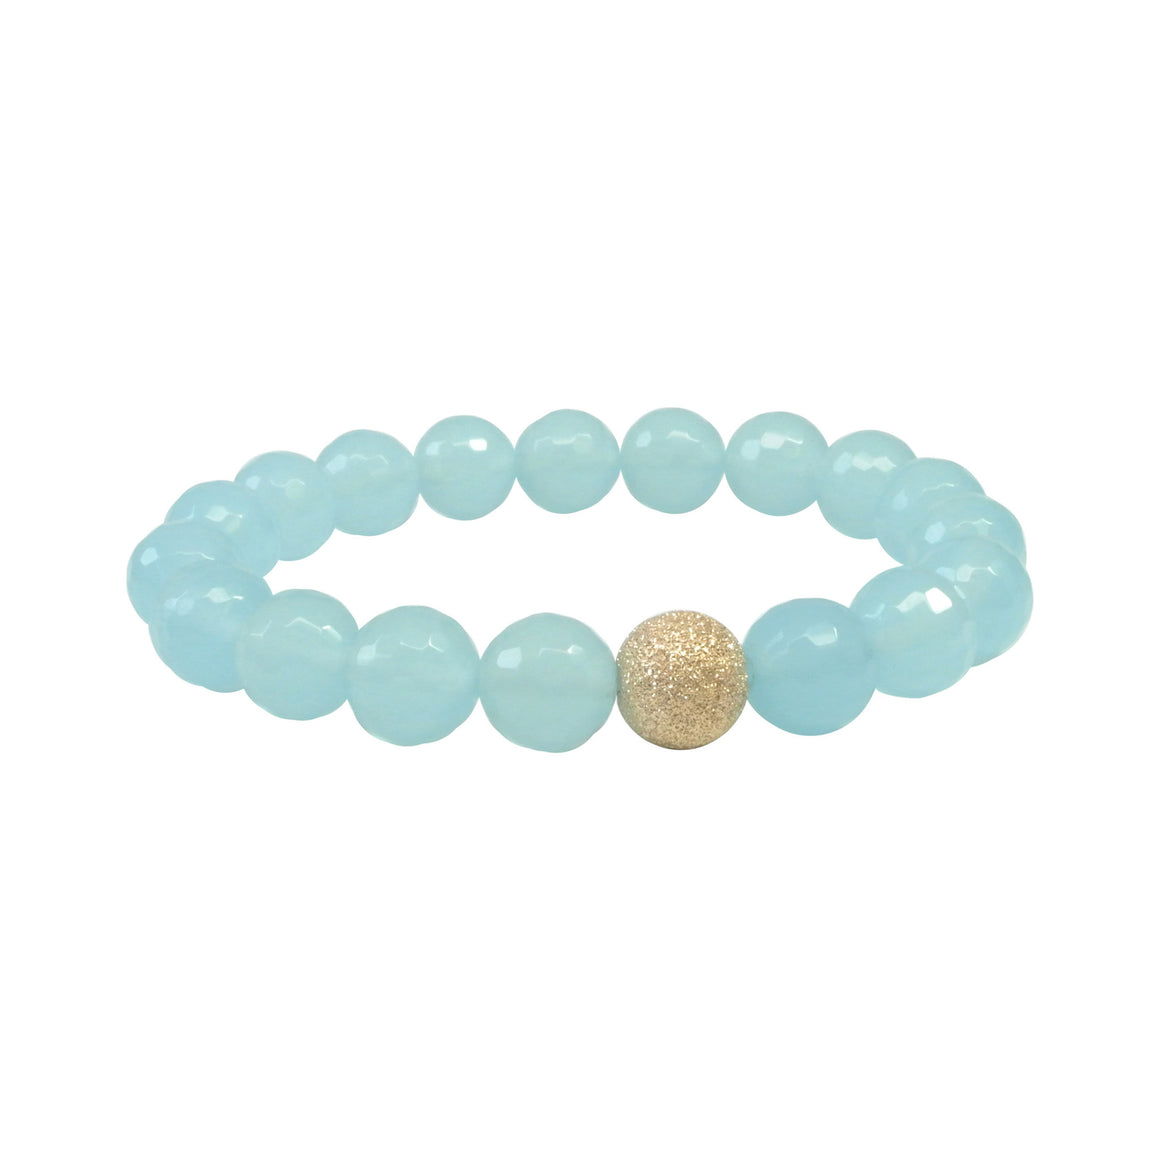 The Ice Blue Bracelet